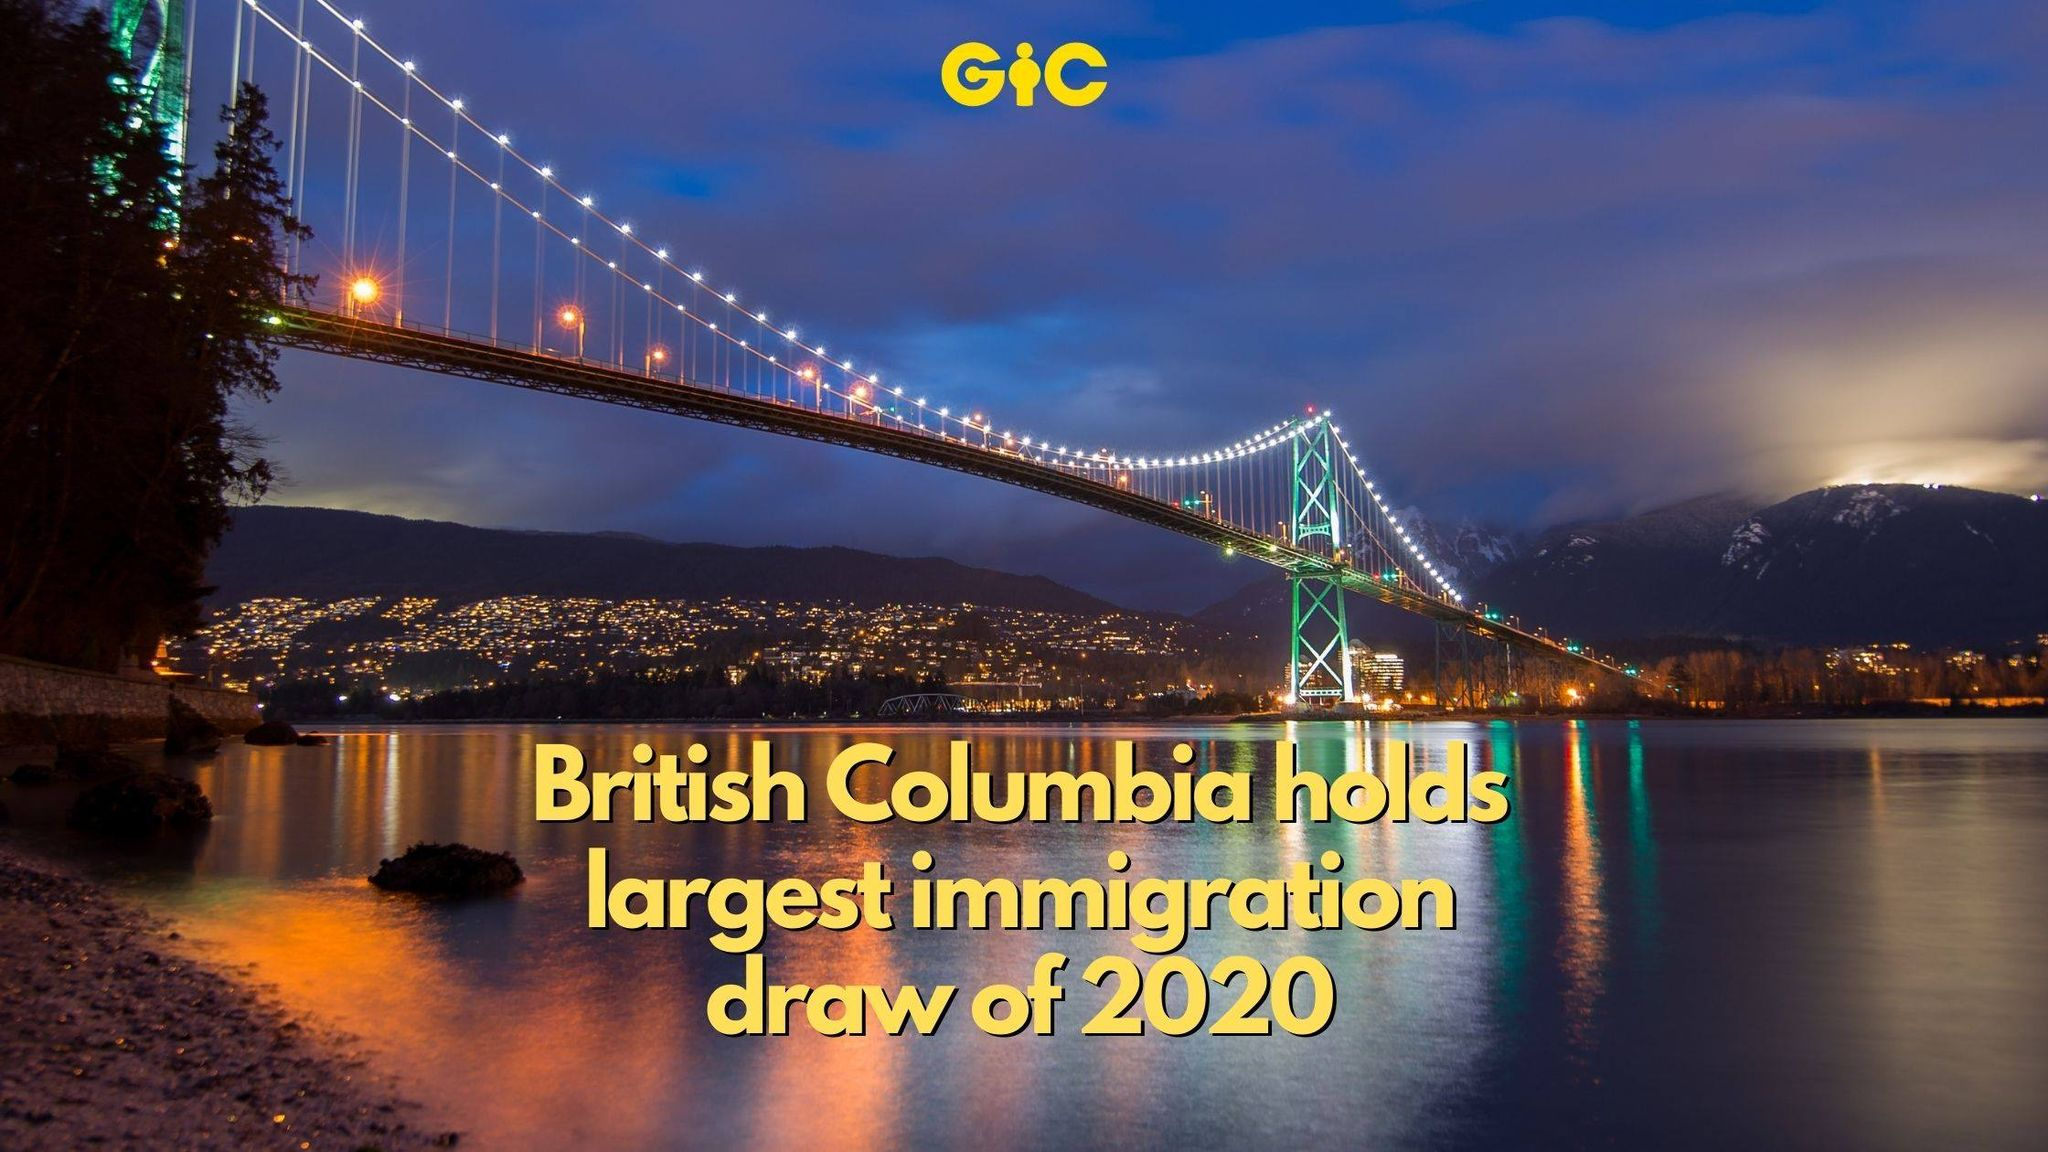 British Columbia holds largest immigration draw of 2020